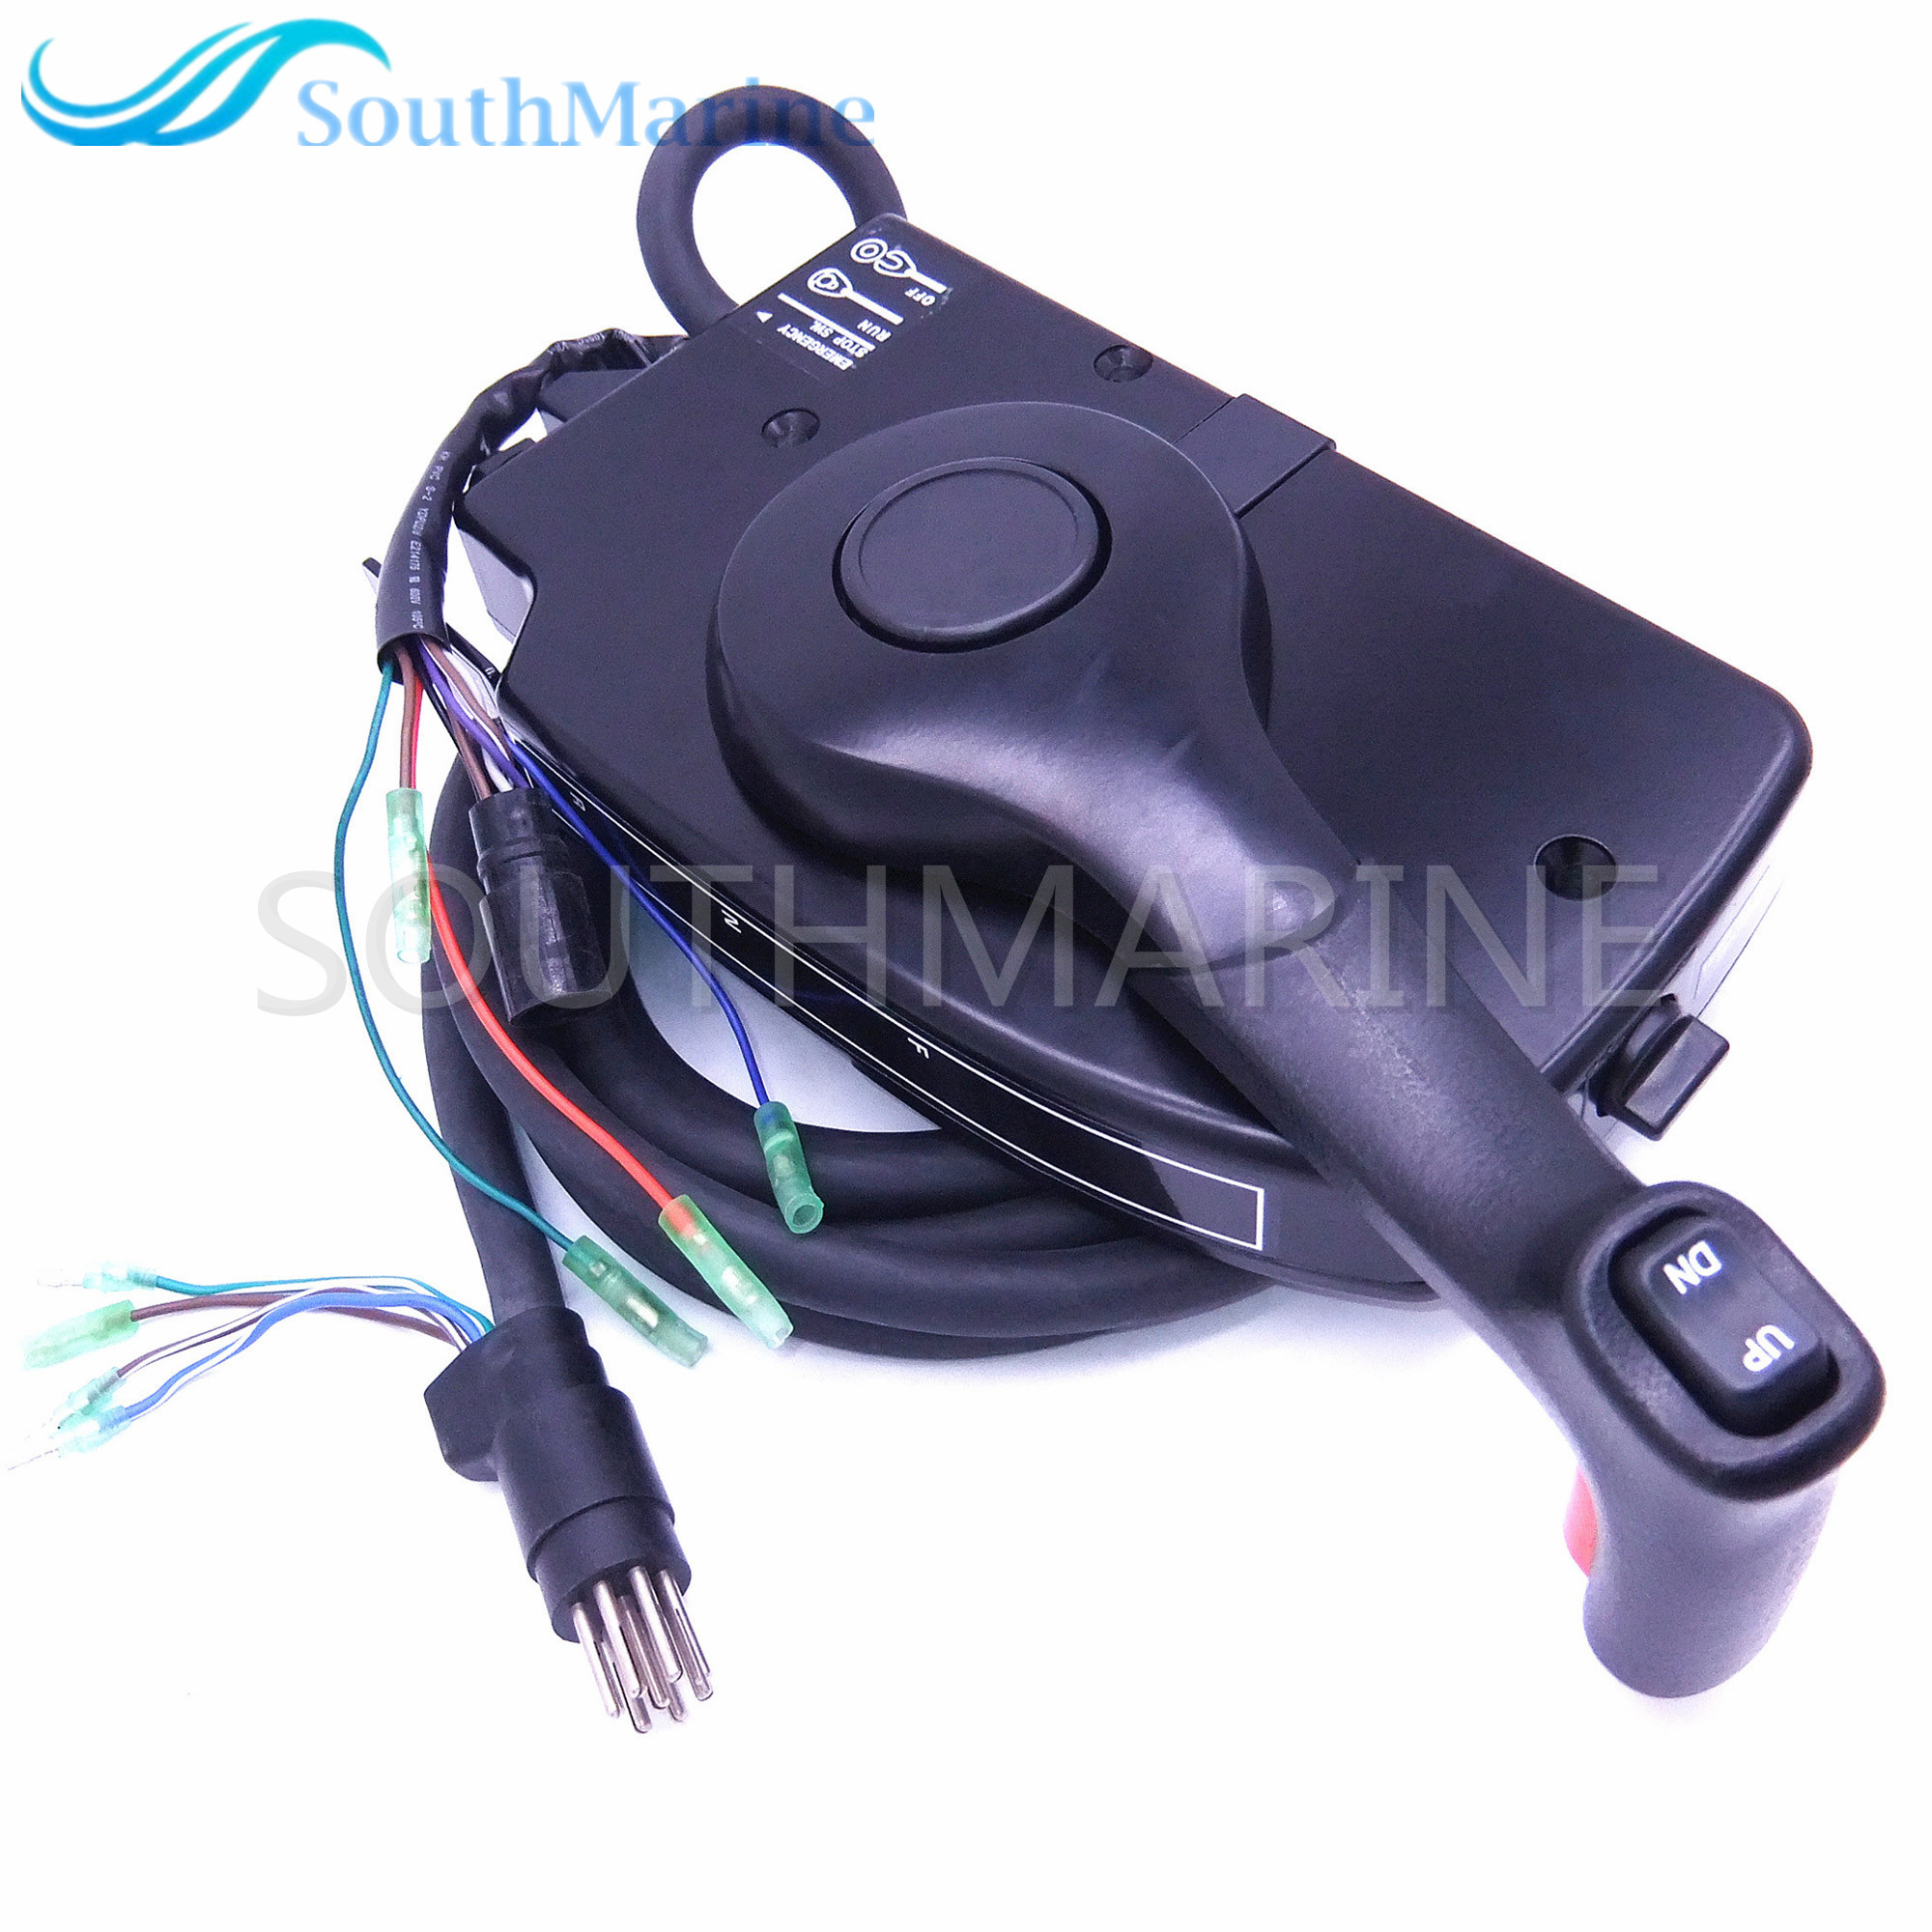 us $221 38 10% off boat motor side mount remote control box 881170a15 with 8 pin for mercury outboard engine pt ,free shipping in boat engine fromSide Mount Control Box Including Mercury Outboard Remote Control Parts #4